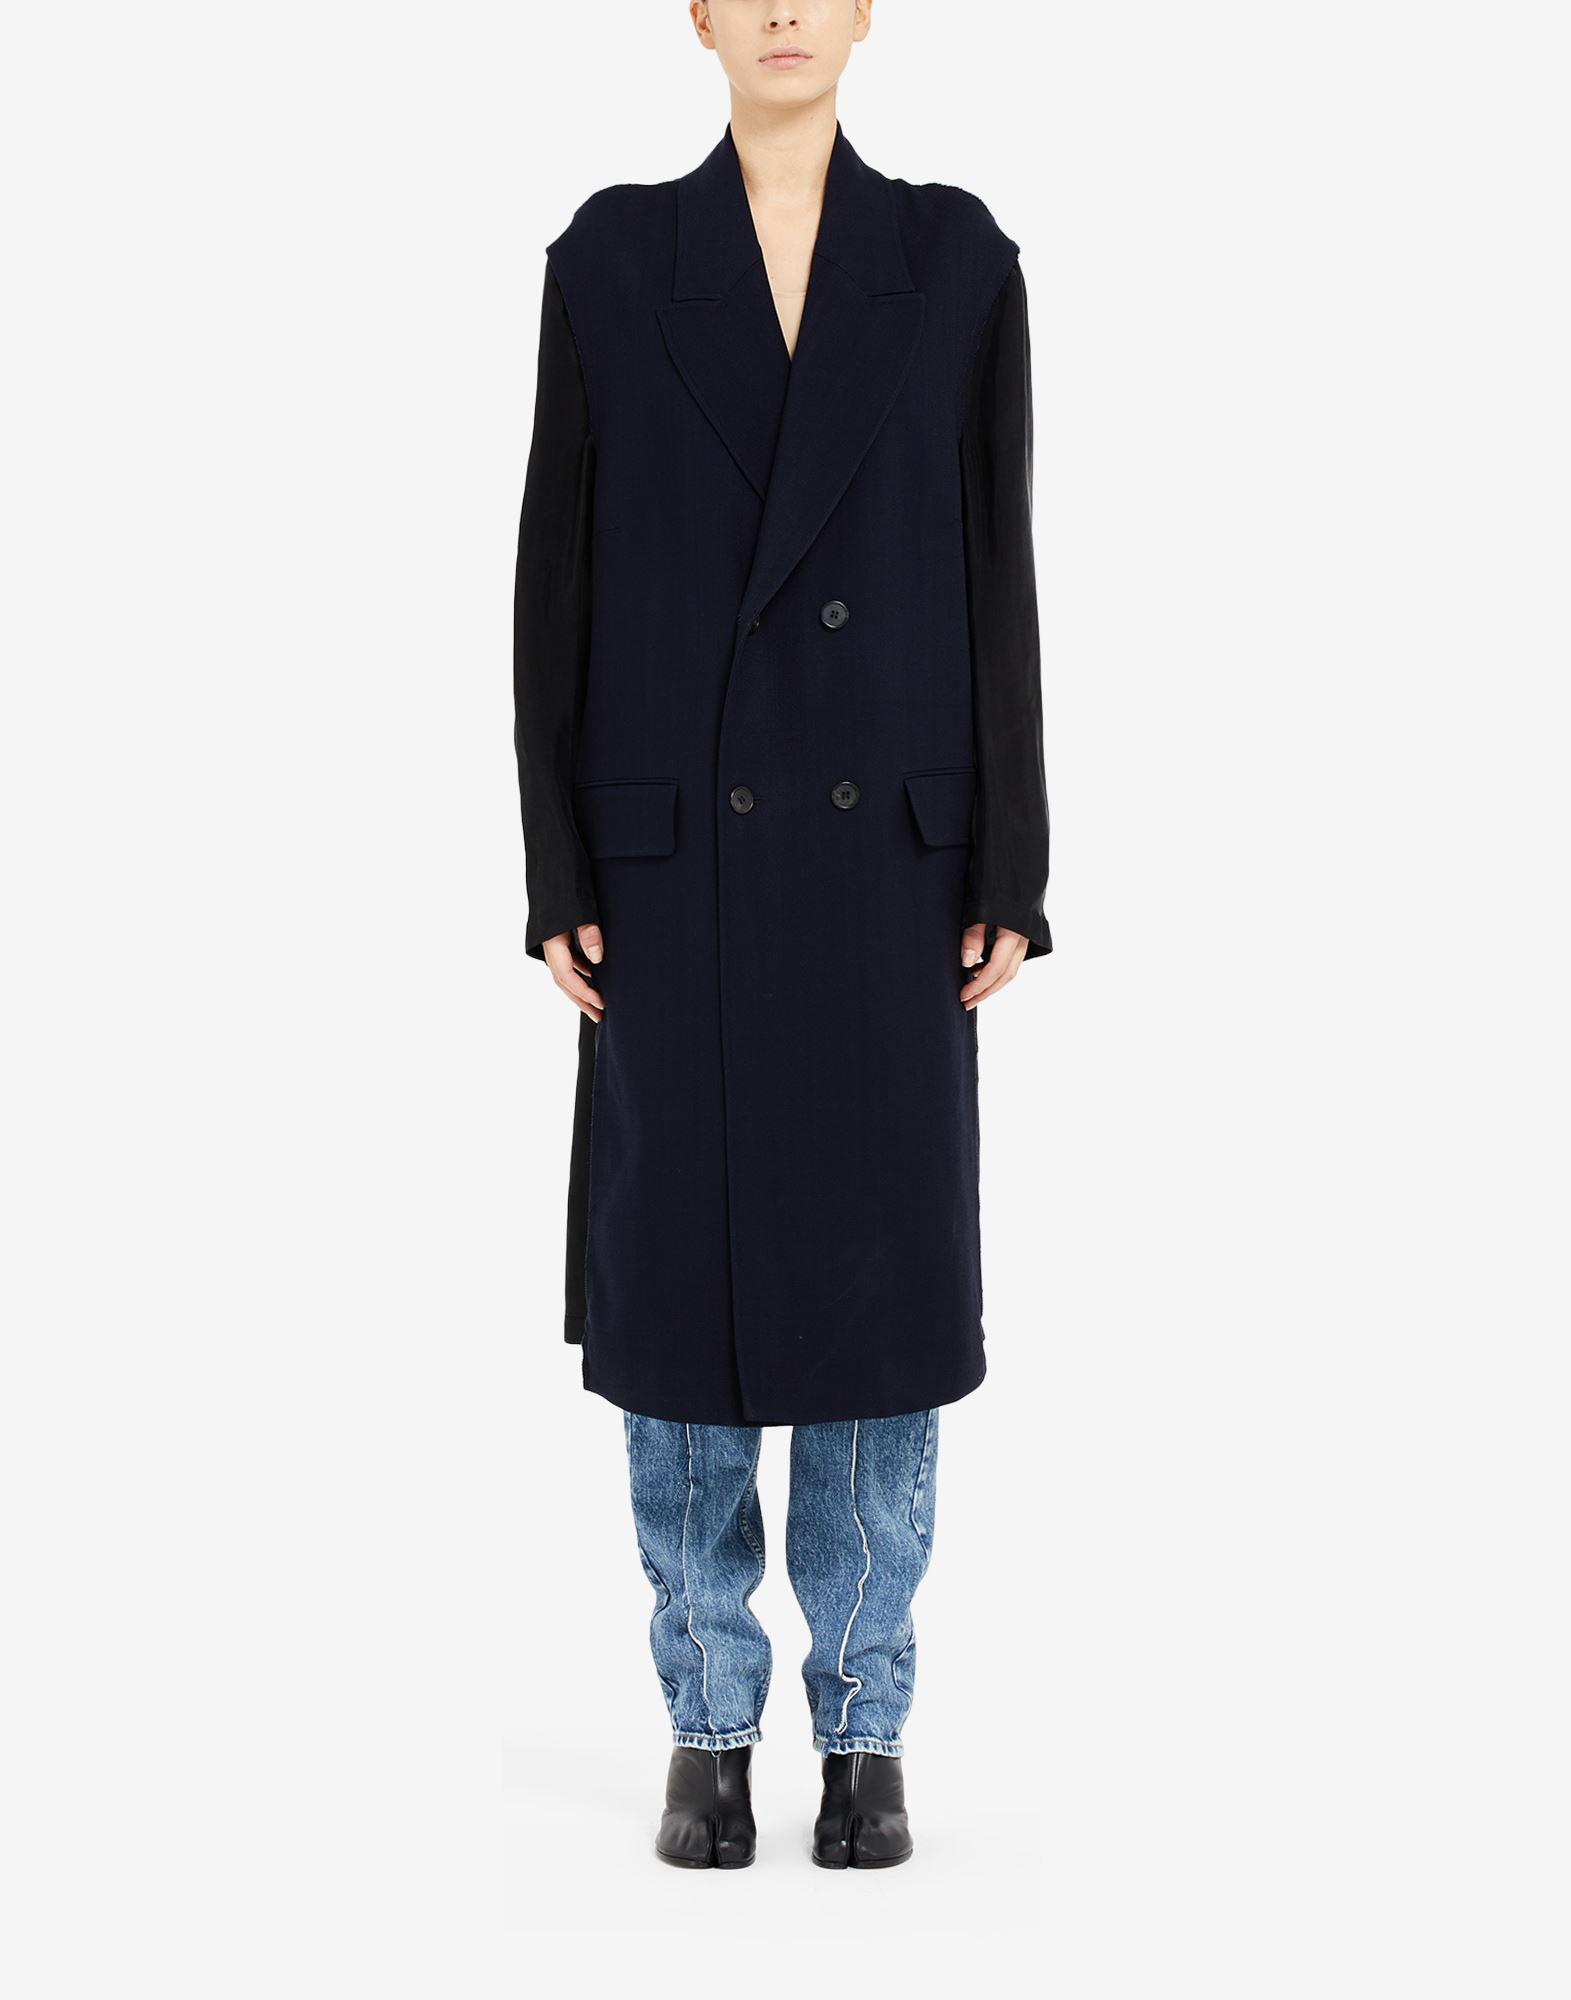 Anonymity of the lining coat